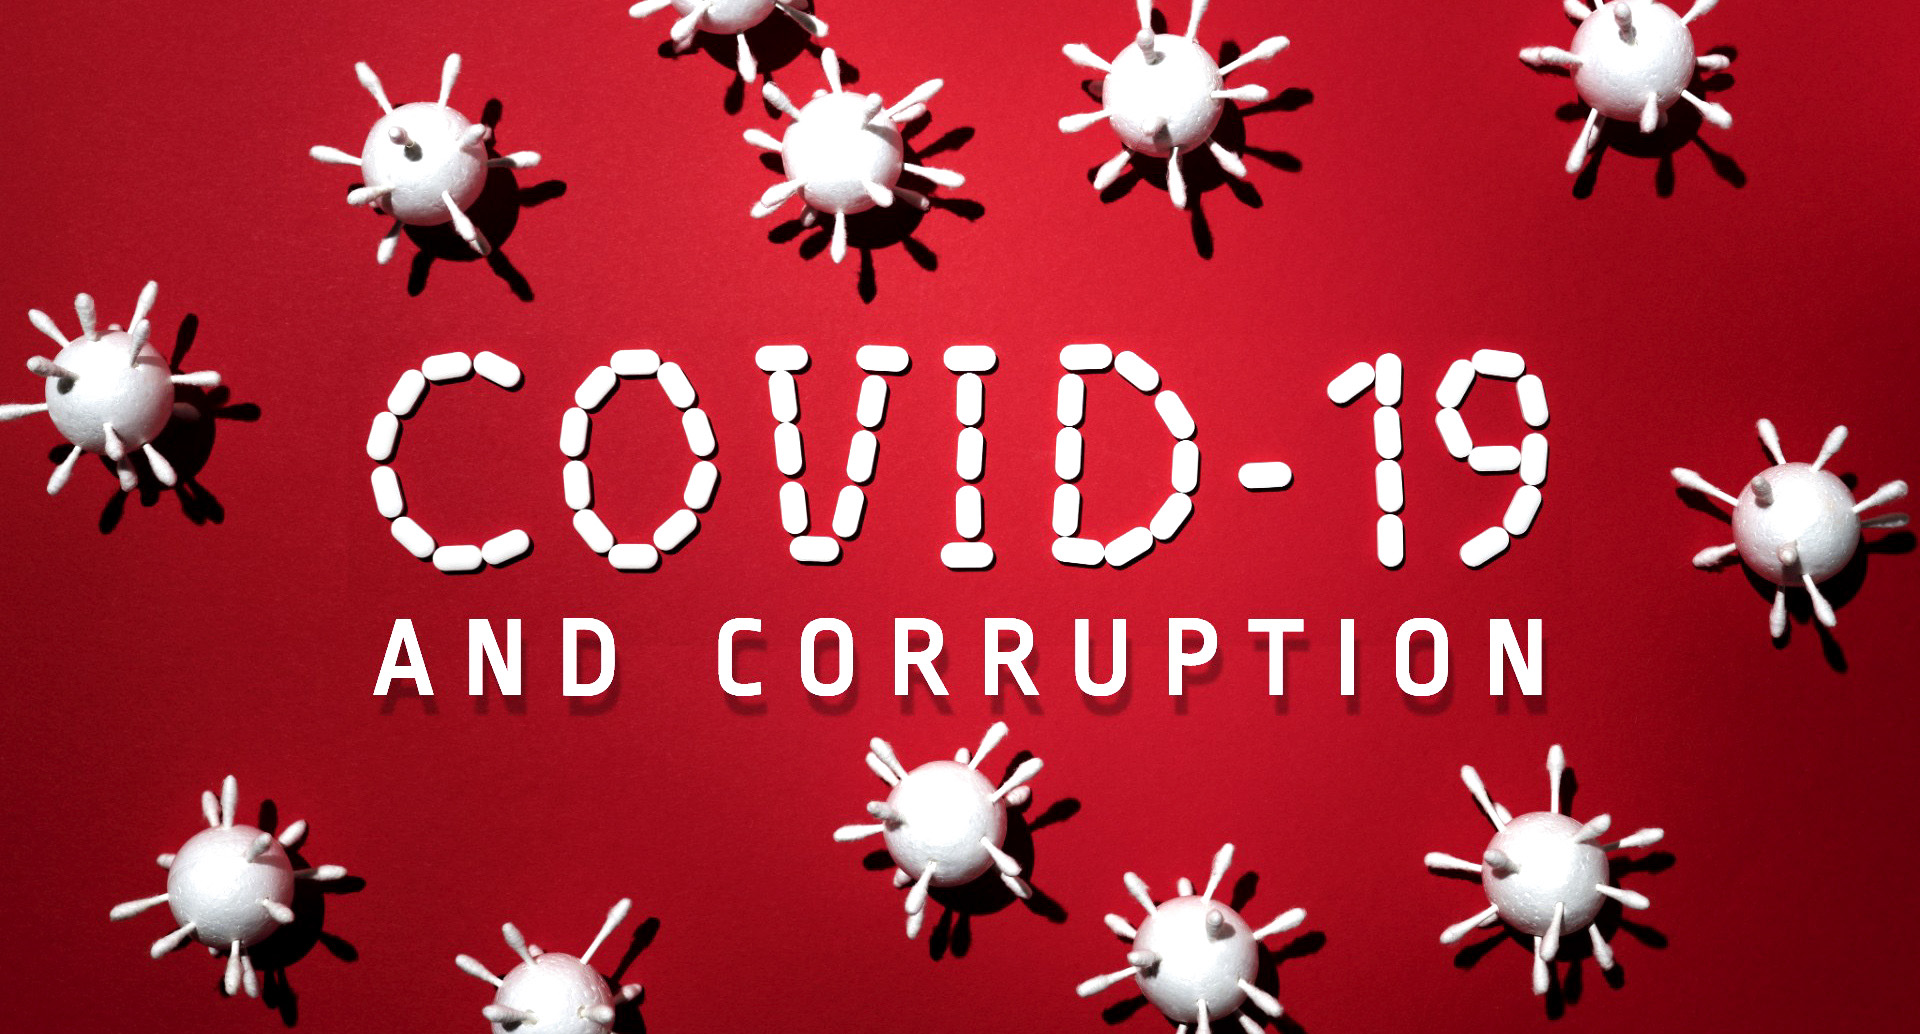 MAVERICK CITIZEN: TUESDAY EDITORIAL: Covid-19 corruption tops R14-billion but to bust criminals we need to drastically boost prosecution services and